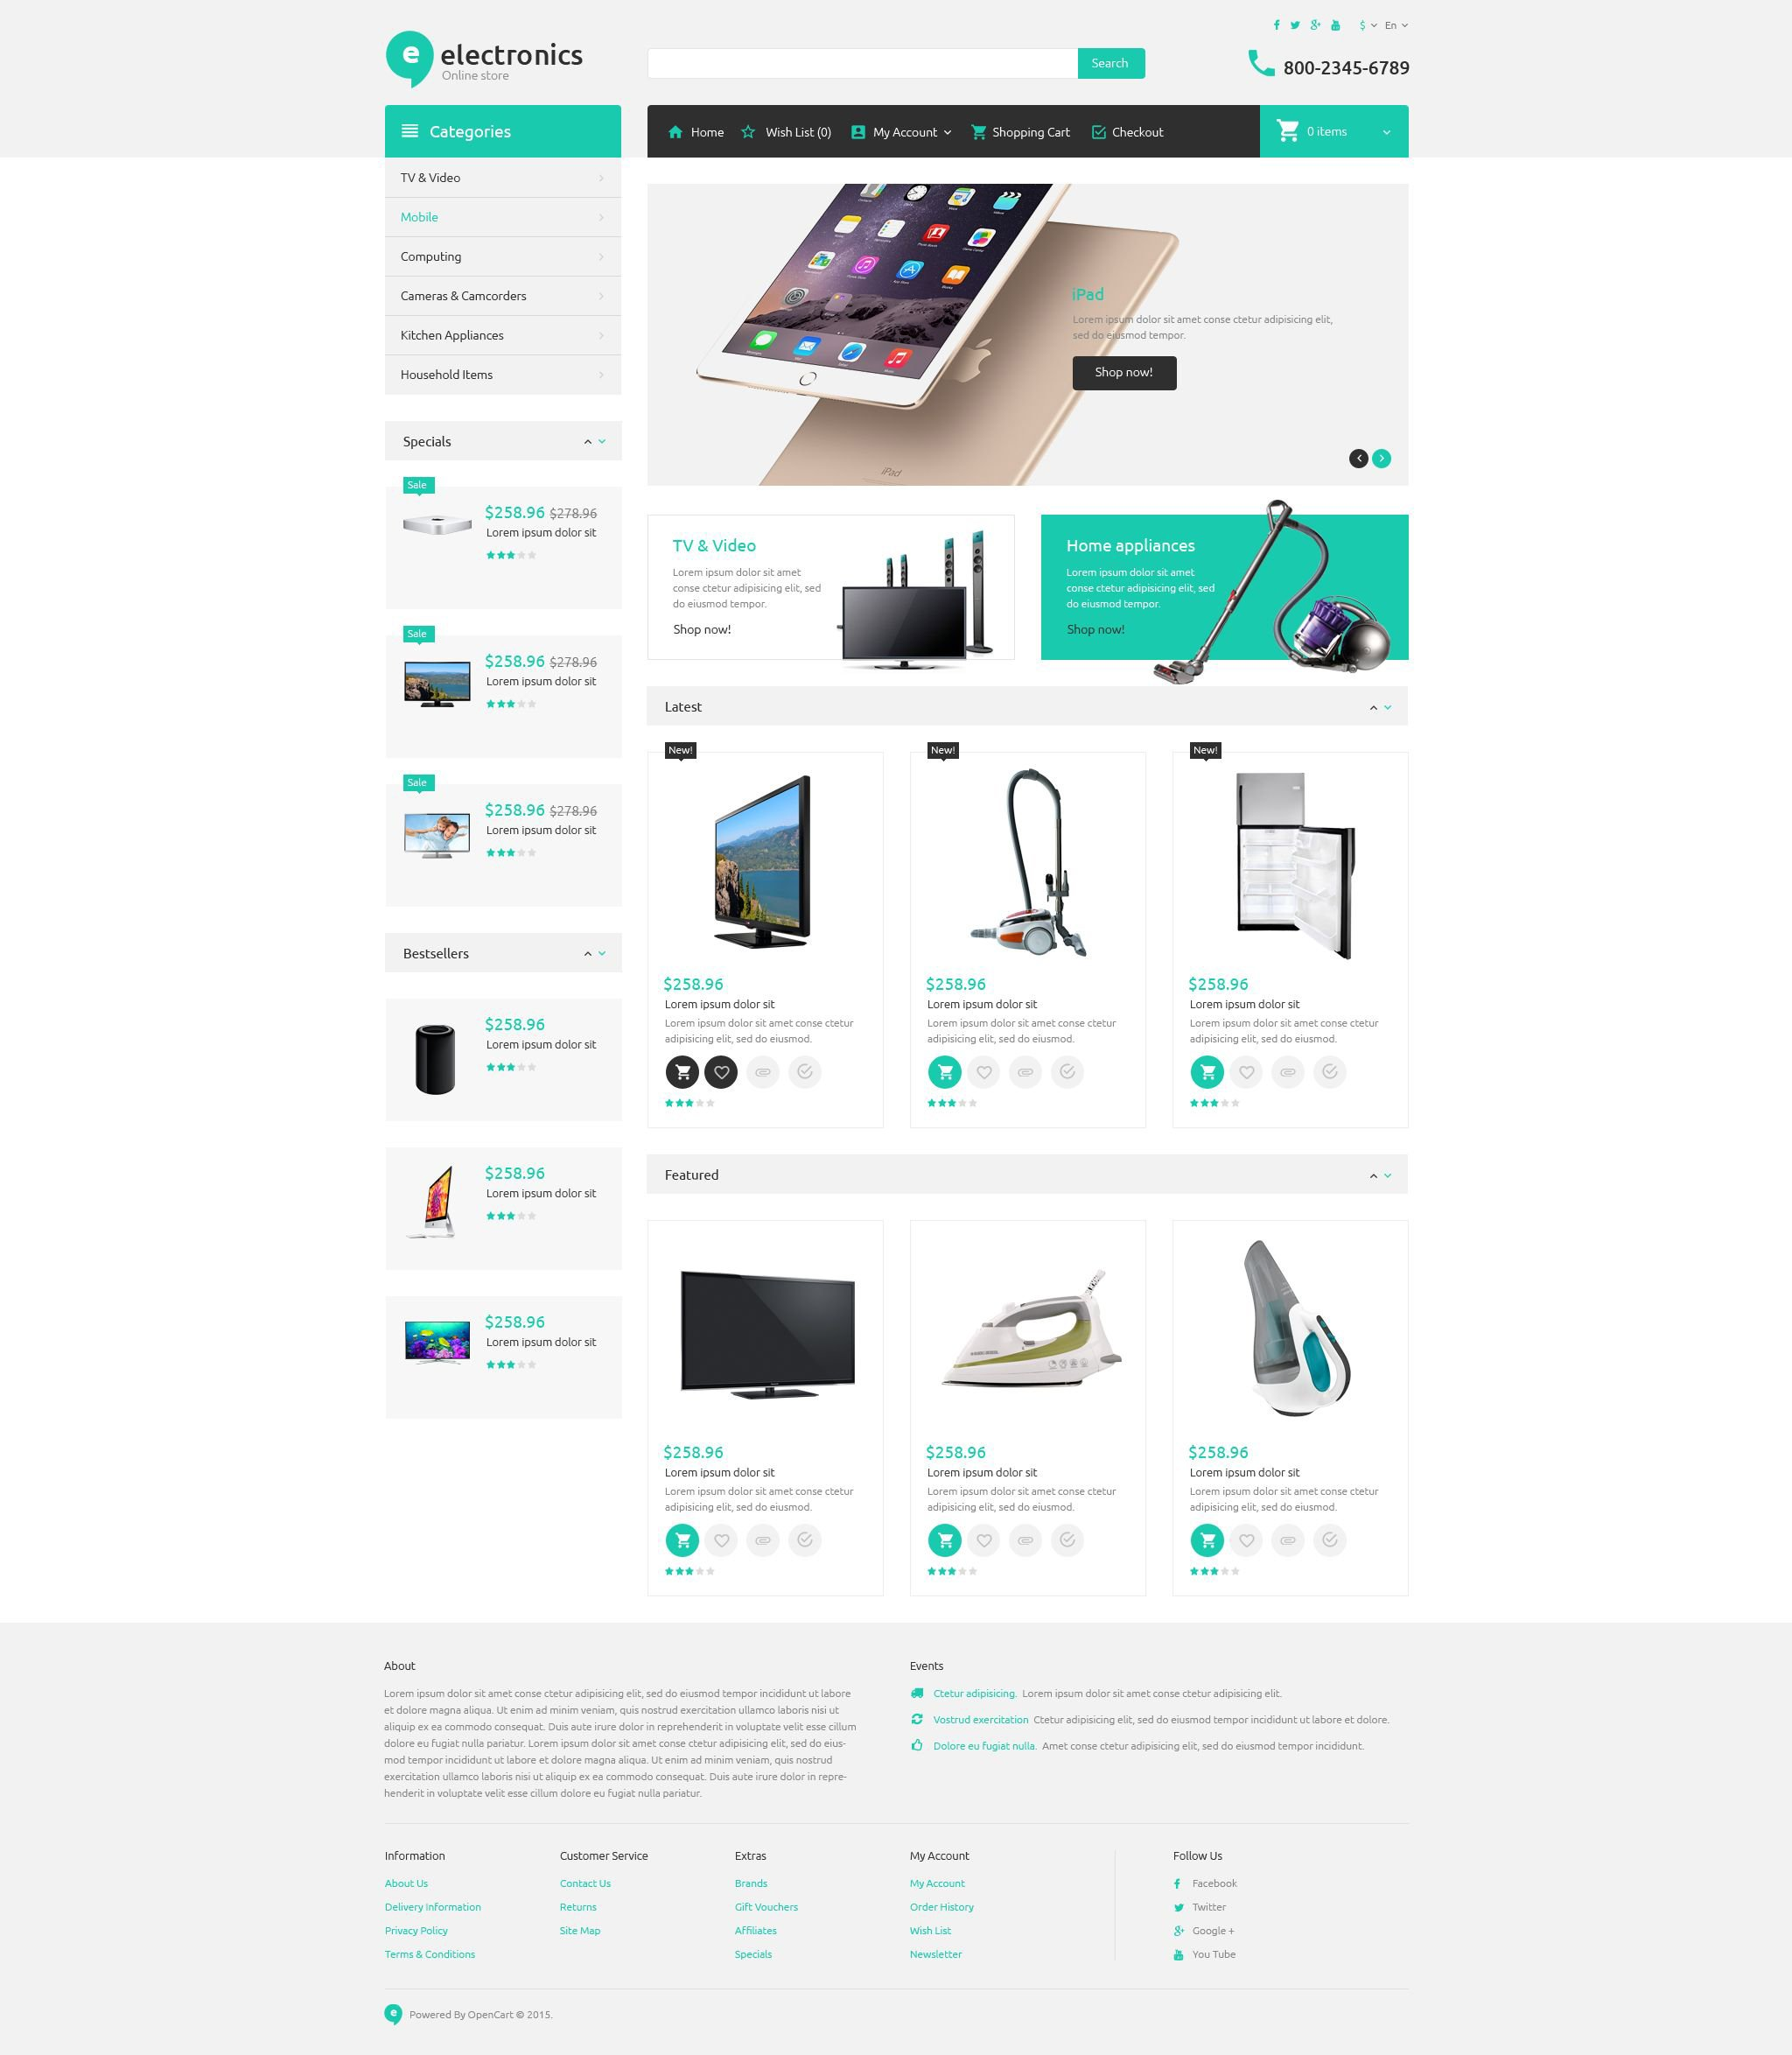 The Electronic Online Shop OpenCart Design 52995, one of the best OpenCart templates of its kind (electronics, most popular), also known as electronic online shop OpenCart template, delivery OpenCart template, computer OpenCart template, office OpenCart template, staff OpenCart template, printer OpenCart template, notebook OpenCart template, laptop shipment OpenCart template, desktop portable OpenCart template, scanner OpenCart template, camera OpenCart template, monitor OpenCart template, cable system OpenCart template, technology OpenCart template, processor OpenCart template, installation OpenCart template, hardware OpenCart template, input OpenCart template, device OpenCart template, memory OpenCart template, server OpenCart template, accessory OpenCart template, wireless OpenCart template, PC connection and related with electronic online shop, delivery, computer, office, staff, printer, notebook, laptop shipment, desktop portable, scanner, camera, monitor, cable system, technology, processor, installation, hardware, input, device, memory, server, accessory, wireless, PC connection, etc.